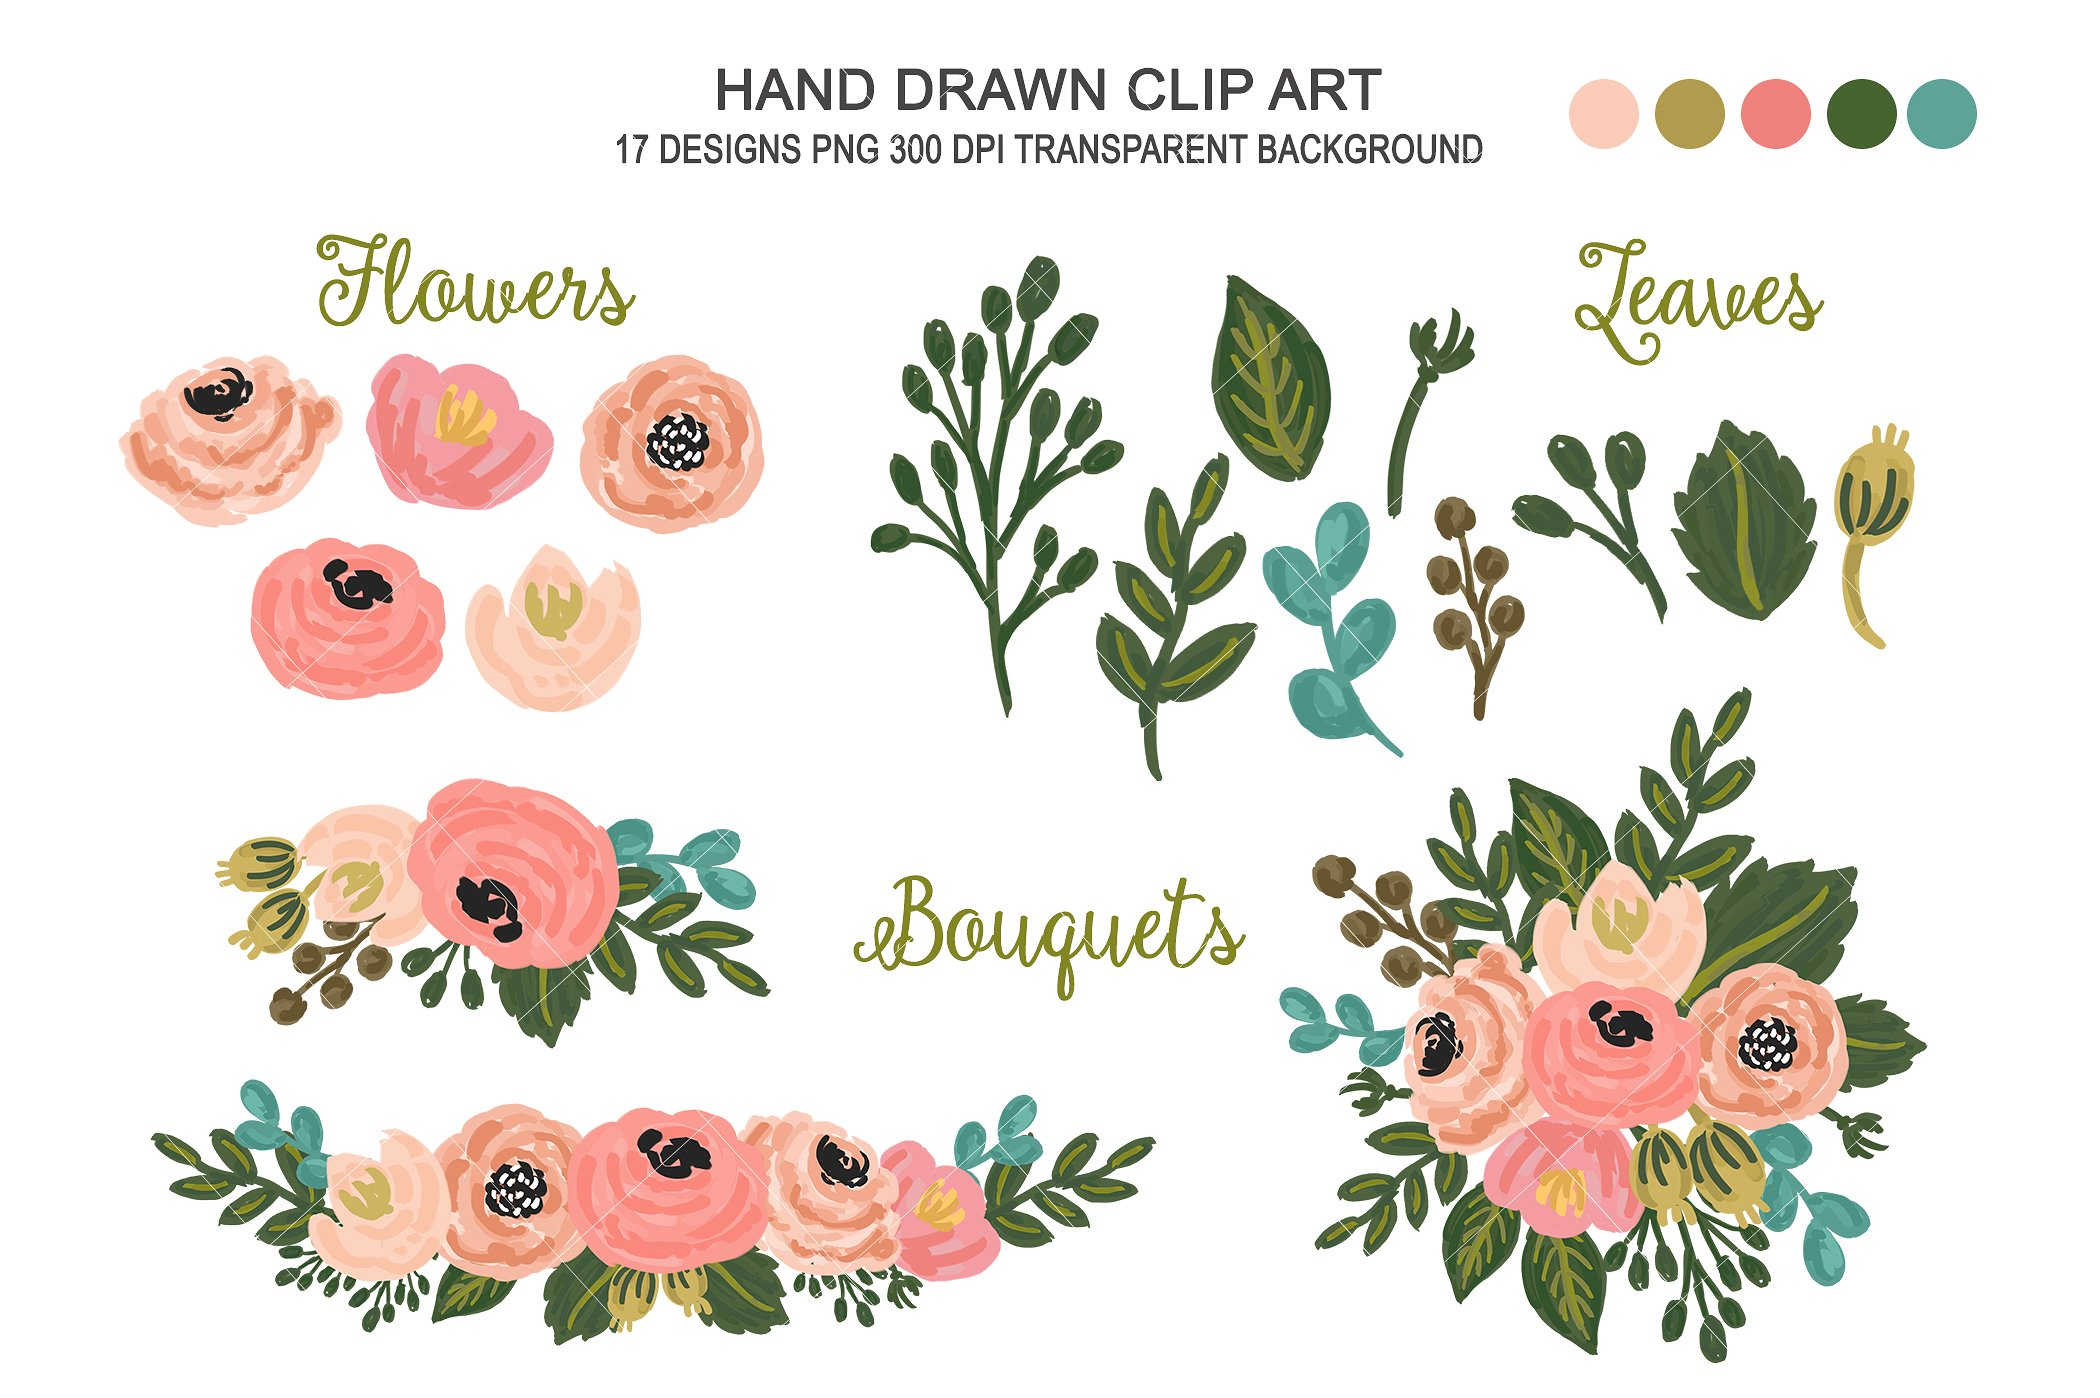 Floral clipart. Wedding flower art illustrations